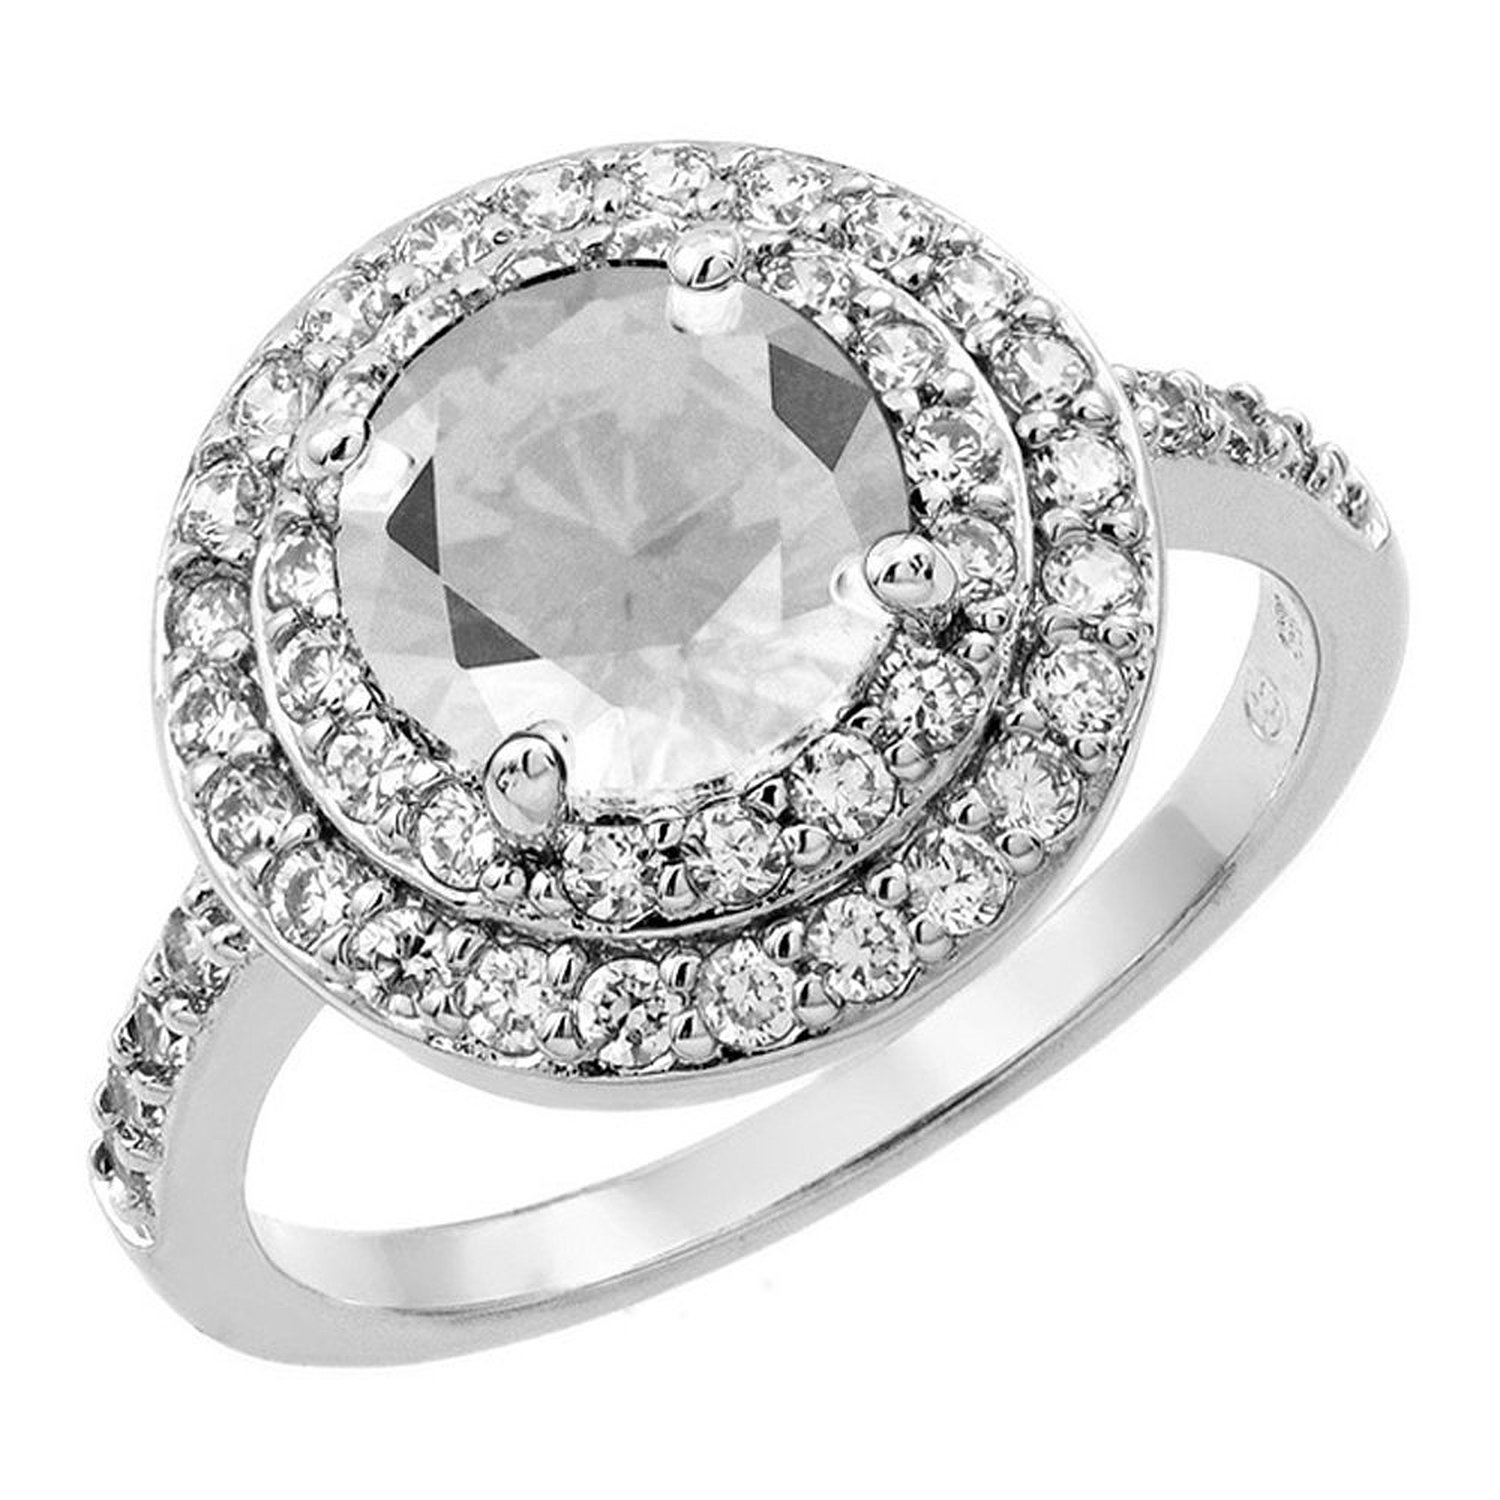 Amazon.com: Pave Set Double Halo Round Shape Cubic Zirconia Center Ring for Women: Jewelry